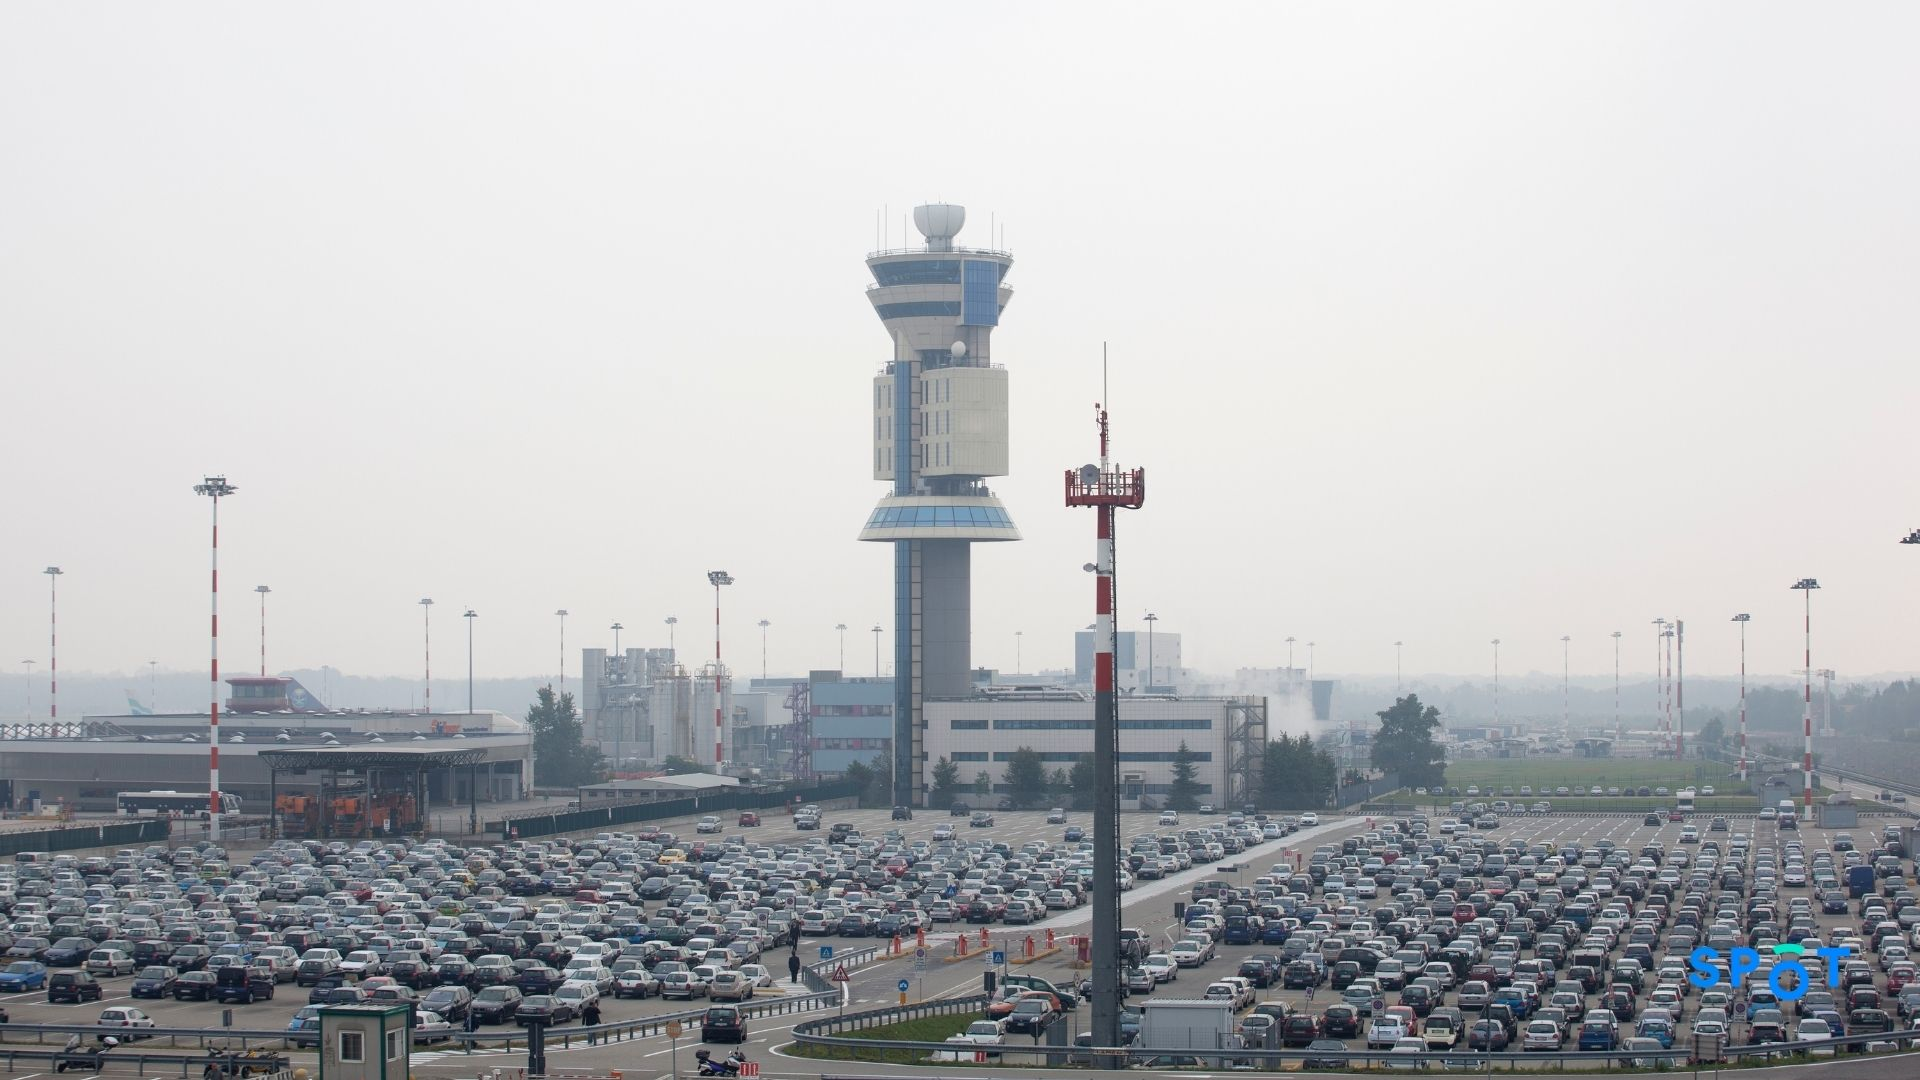 The challenges of airport parking - traffic congestions, pollution, inefficient operations